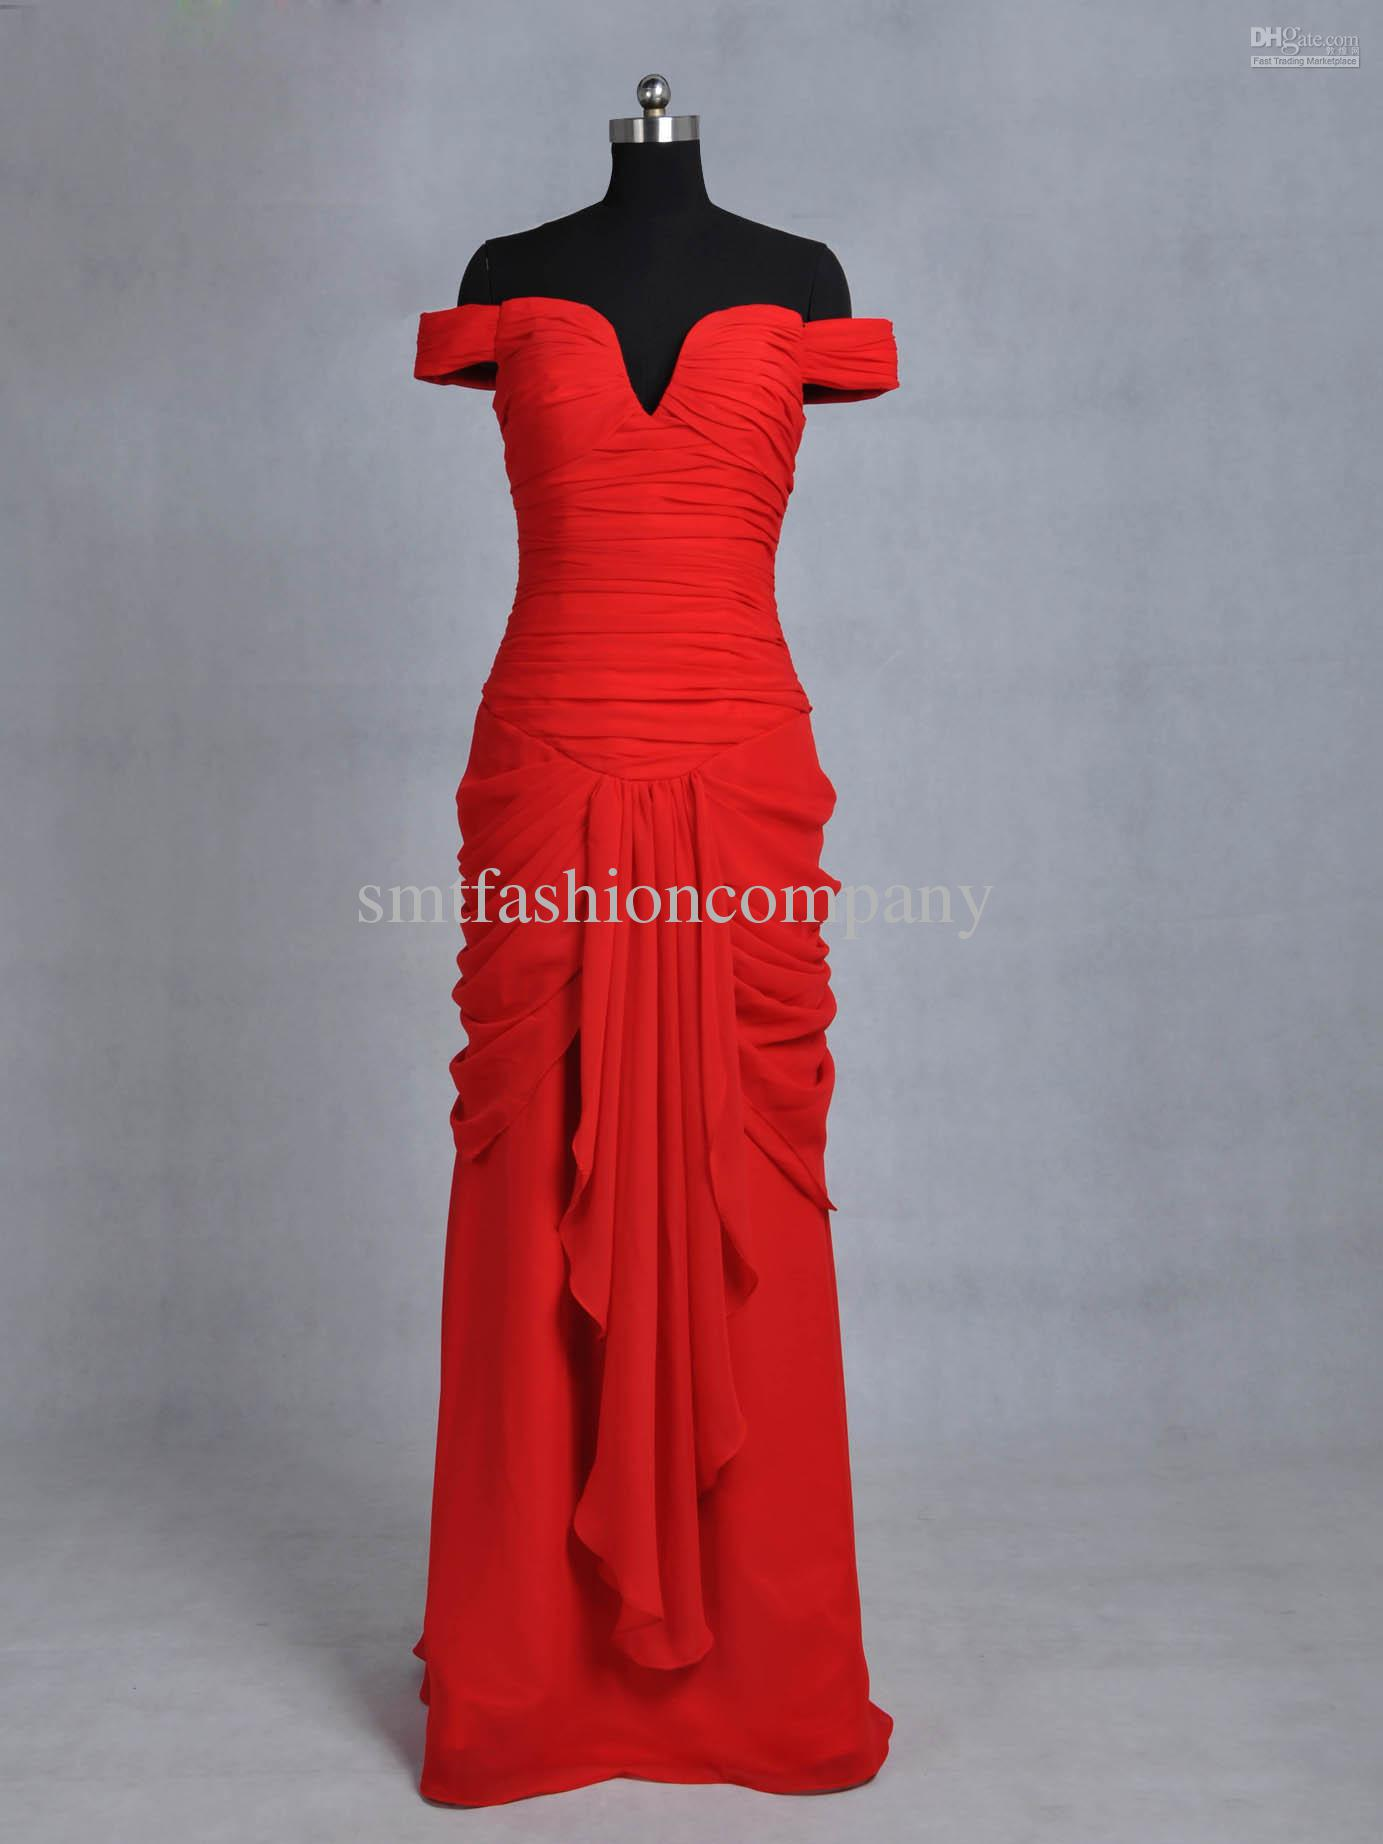 Gift Ele8245 Pretty Woman Red A Line Aruched Off The